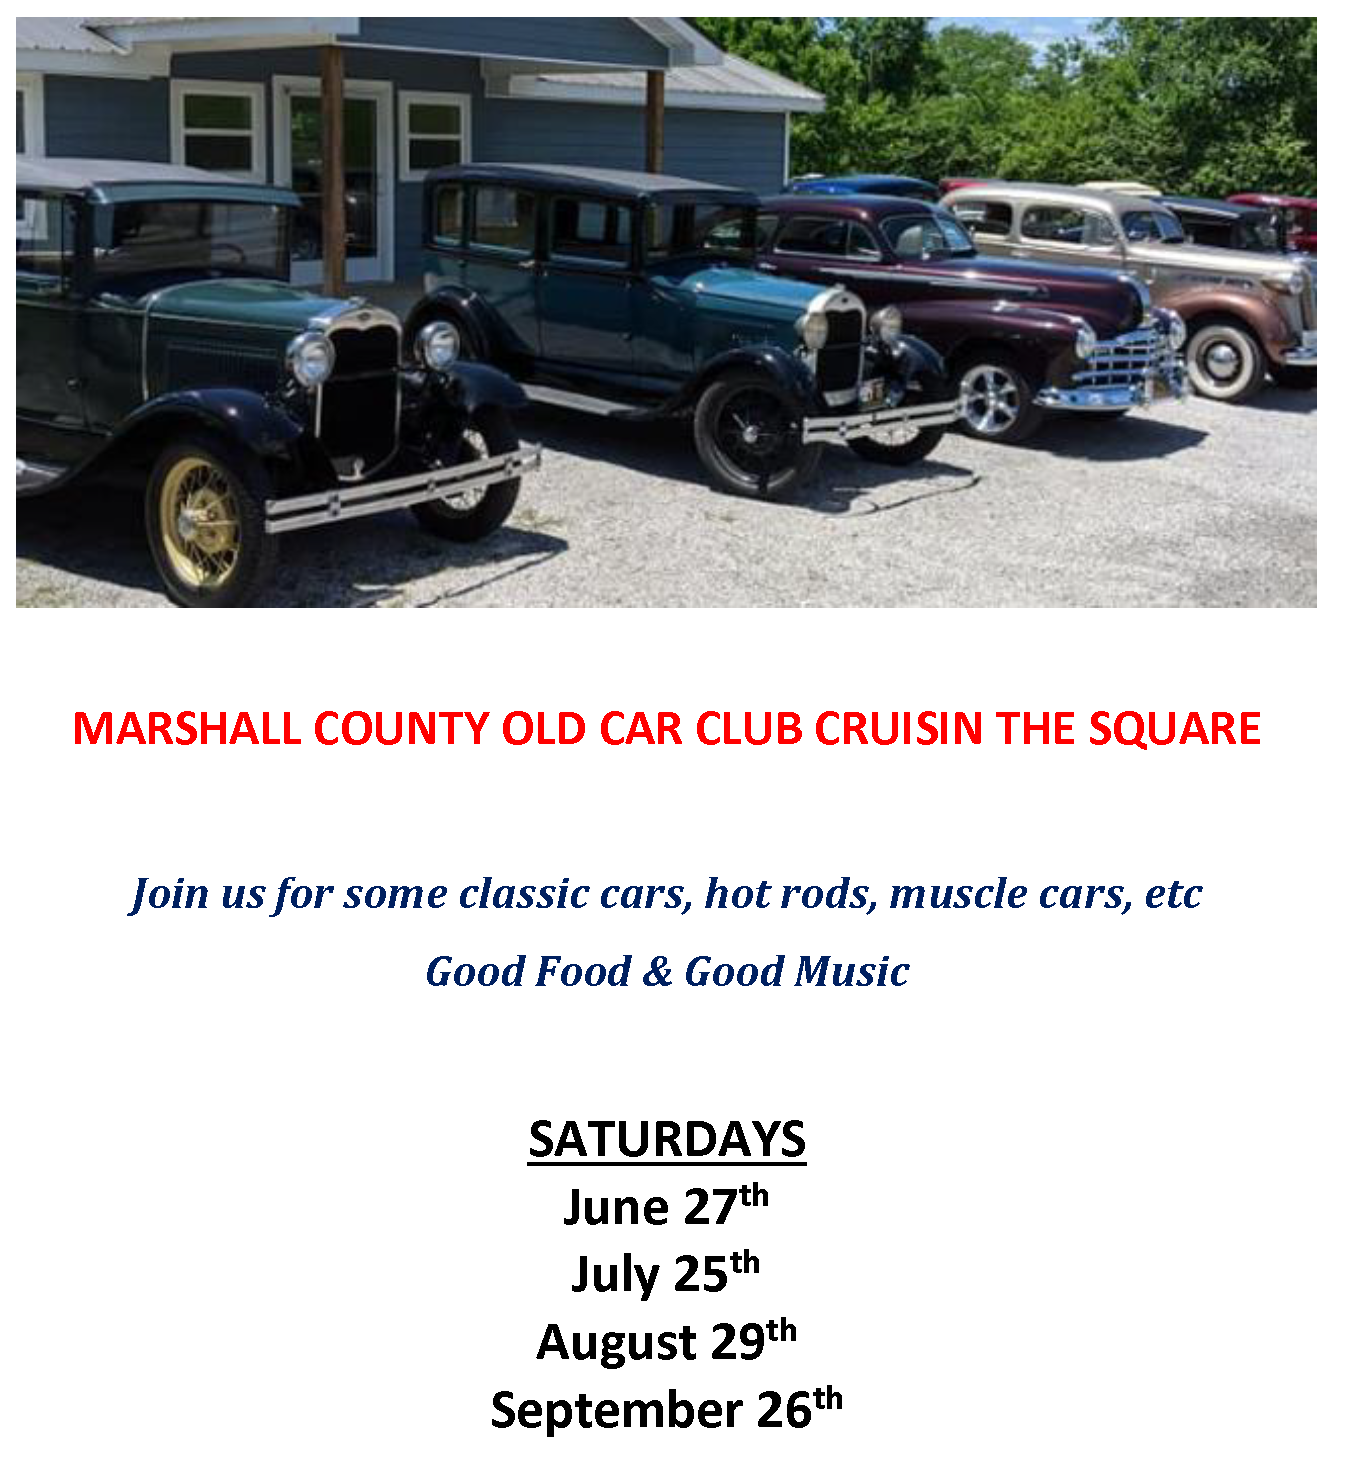 MARSHALL COUNTY OLD CAR CLUB CRUISIN THE SQUARE